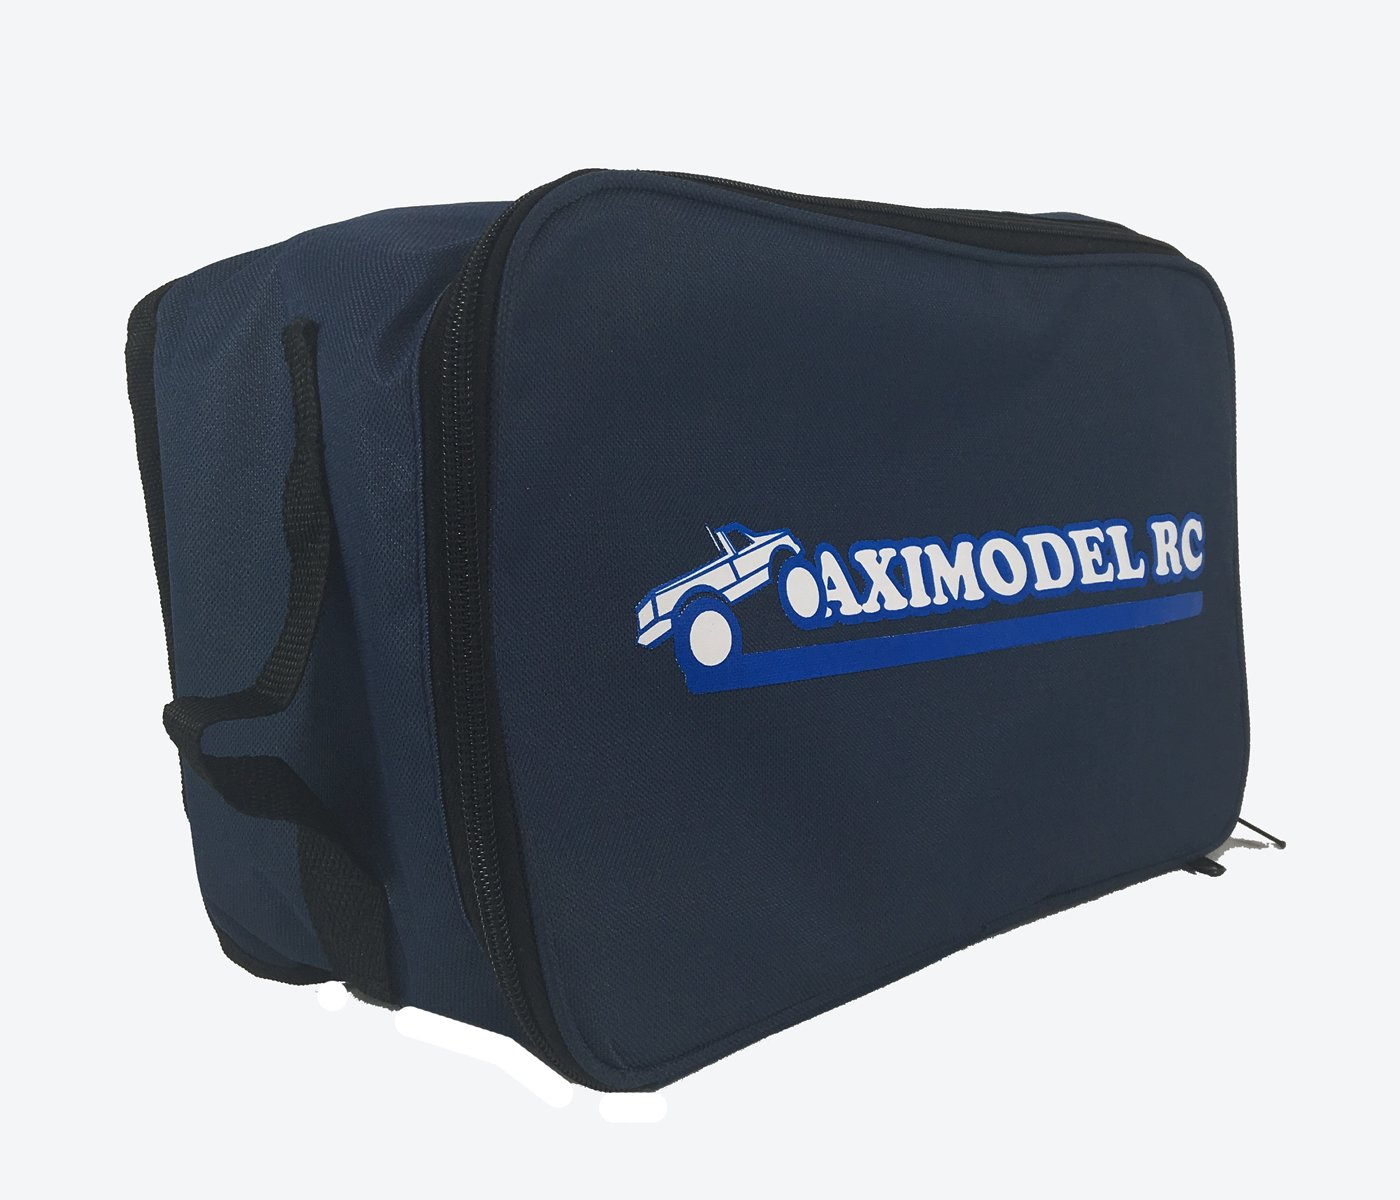 RC Radio Bag / Case, Remote Controller Bag. RC Pistol Grip Transmitter Case / Pouch. For RC Cars, Boats etc AXDesign